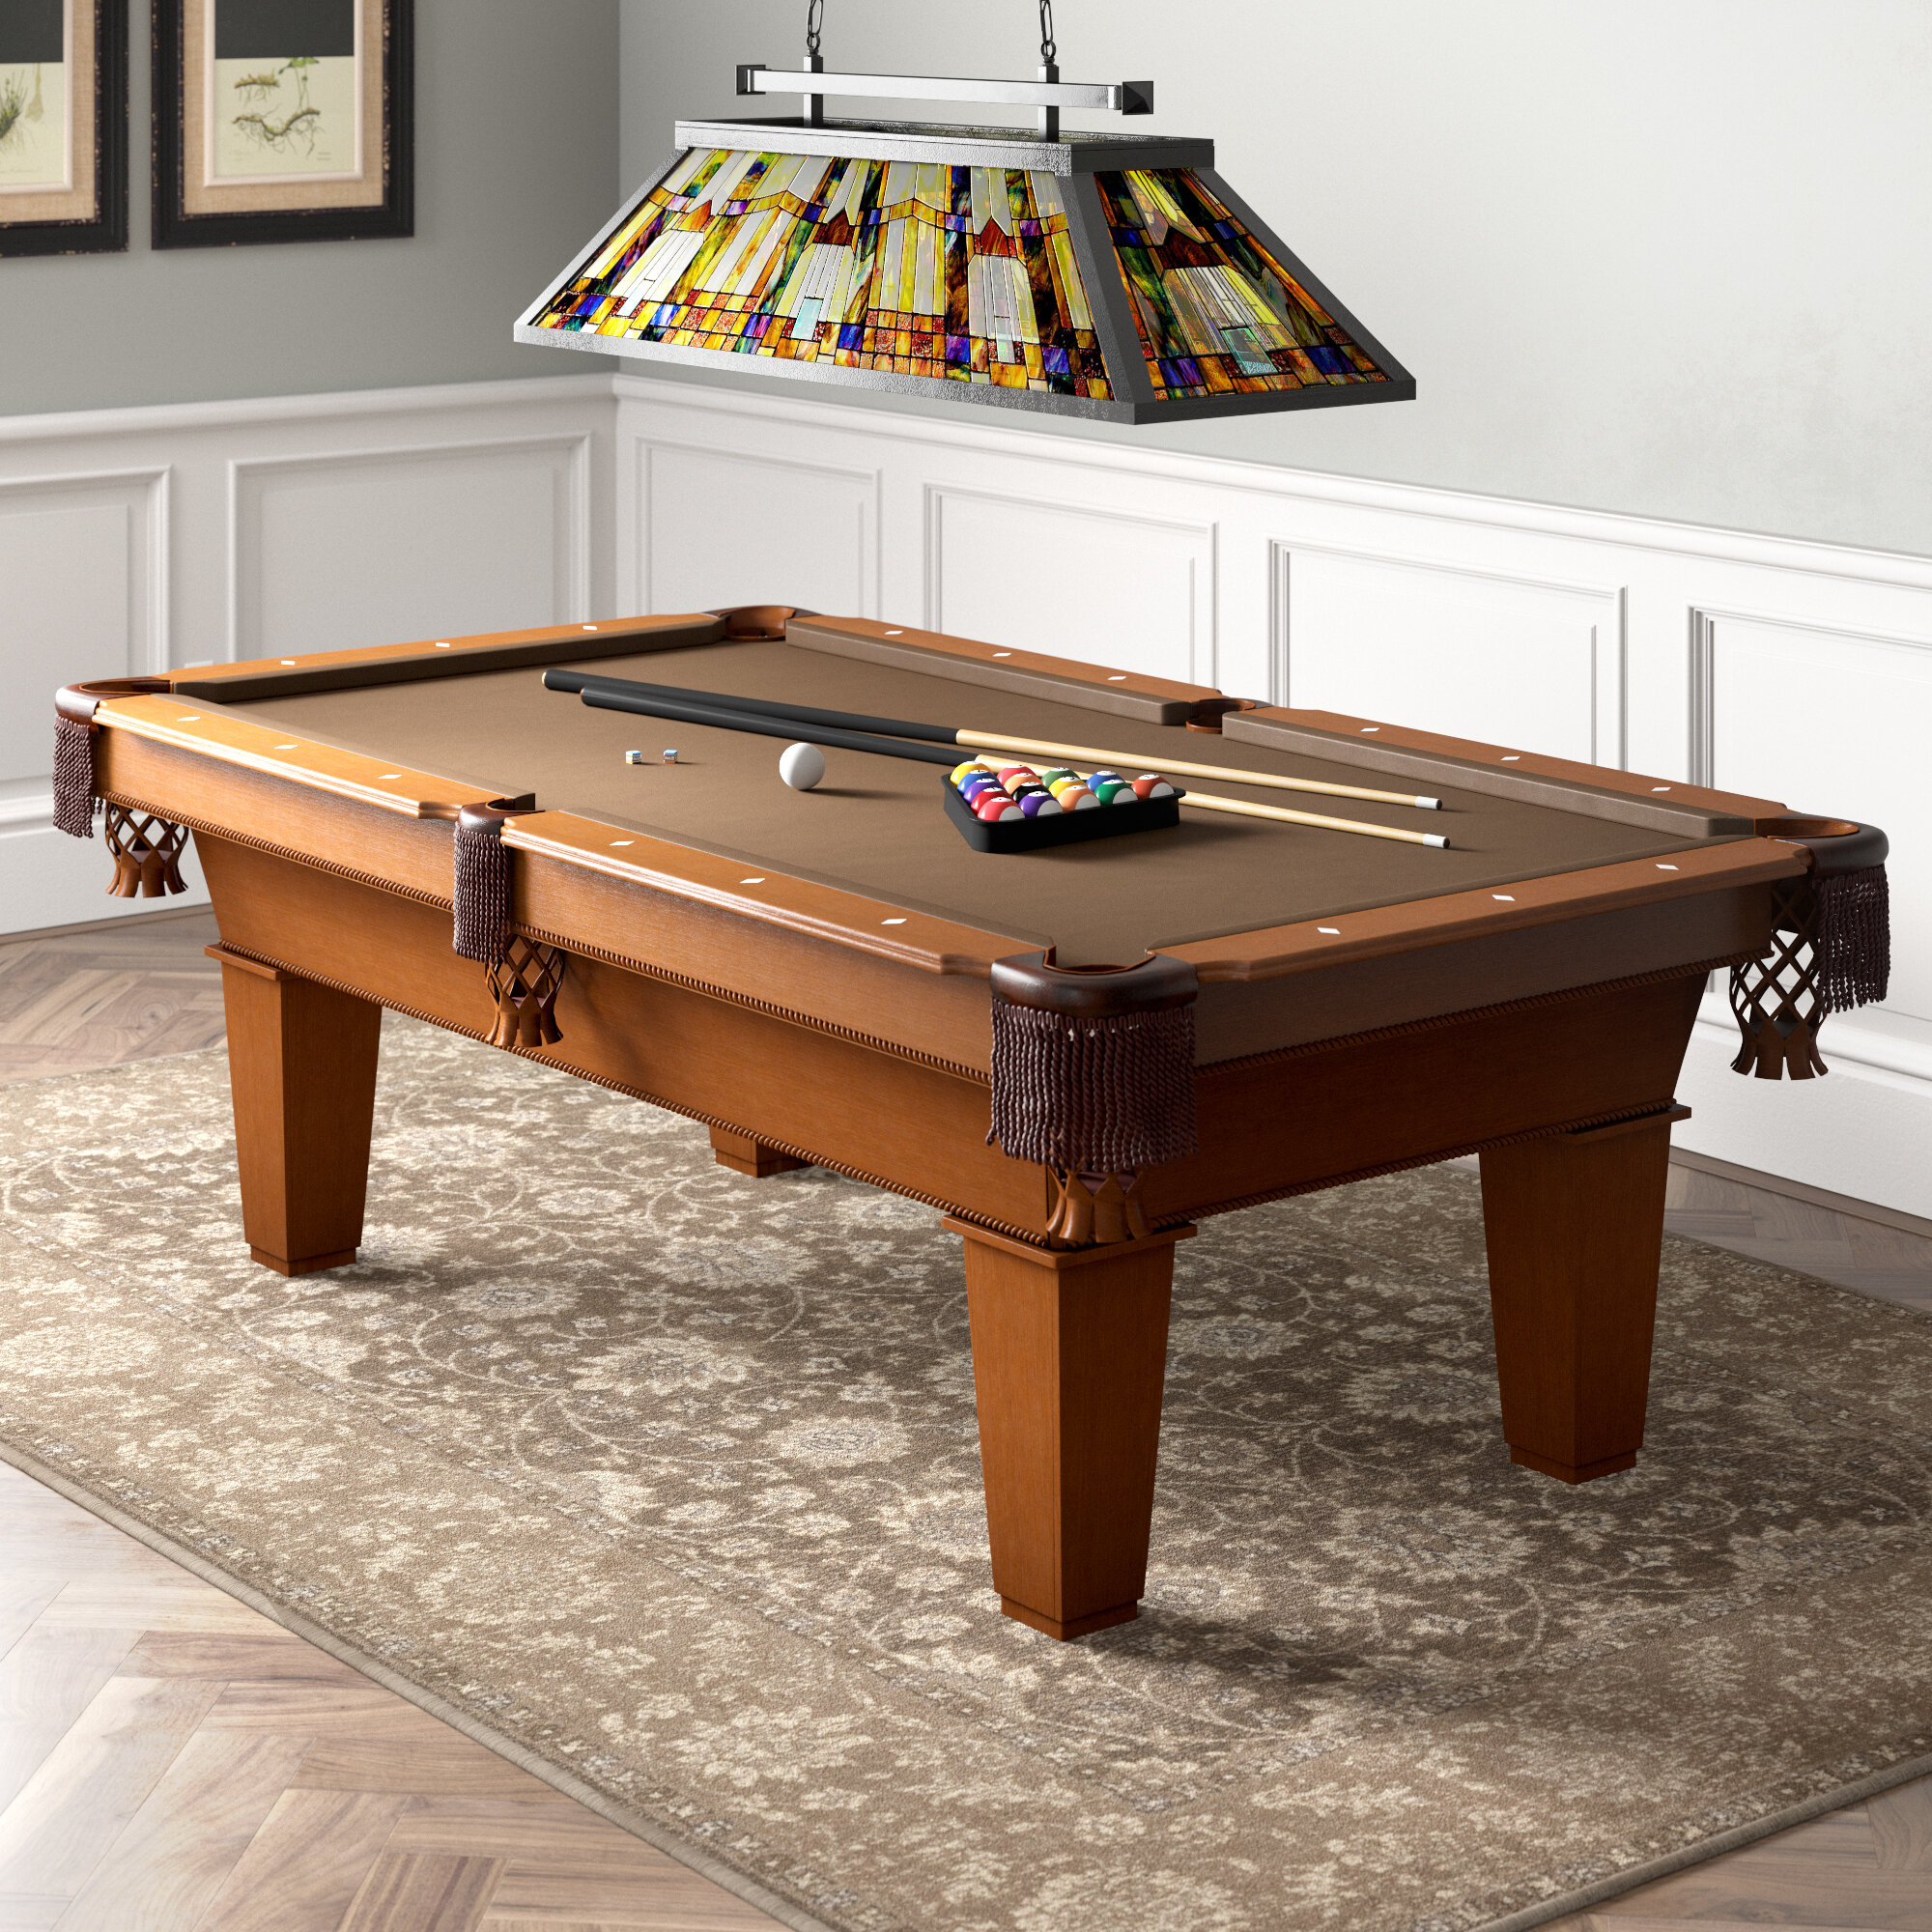 GLD Products Fat Cat Frisco 7.5' Pool Table with Accessories